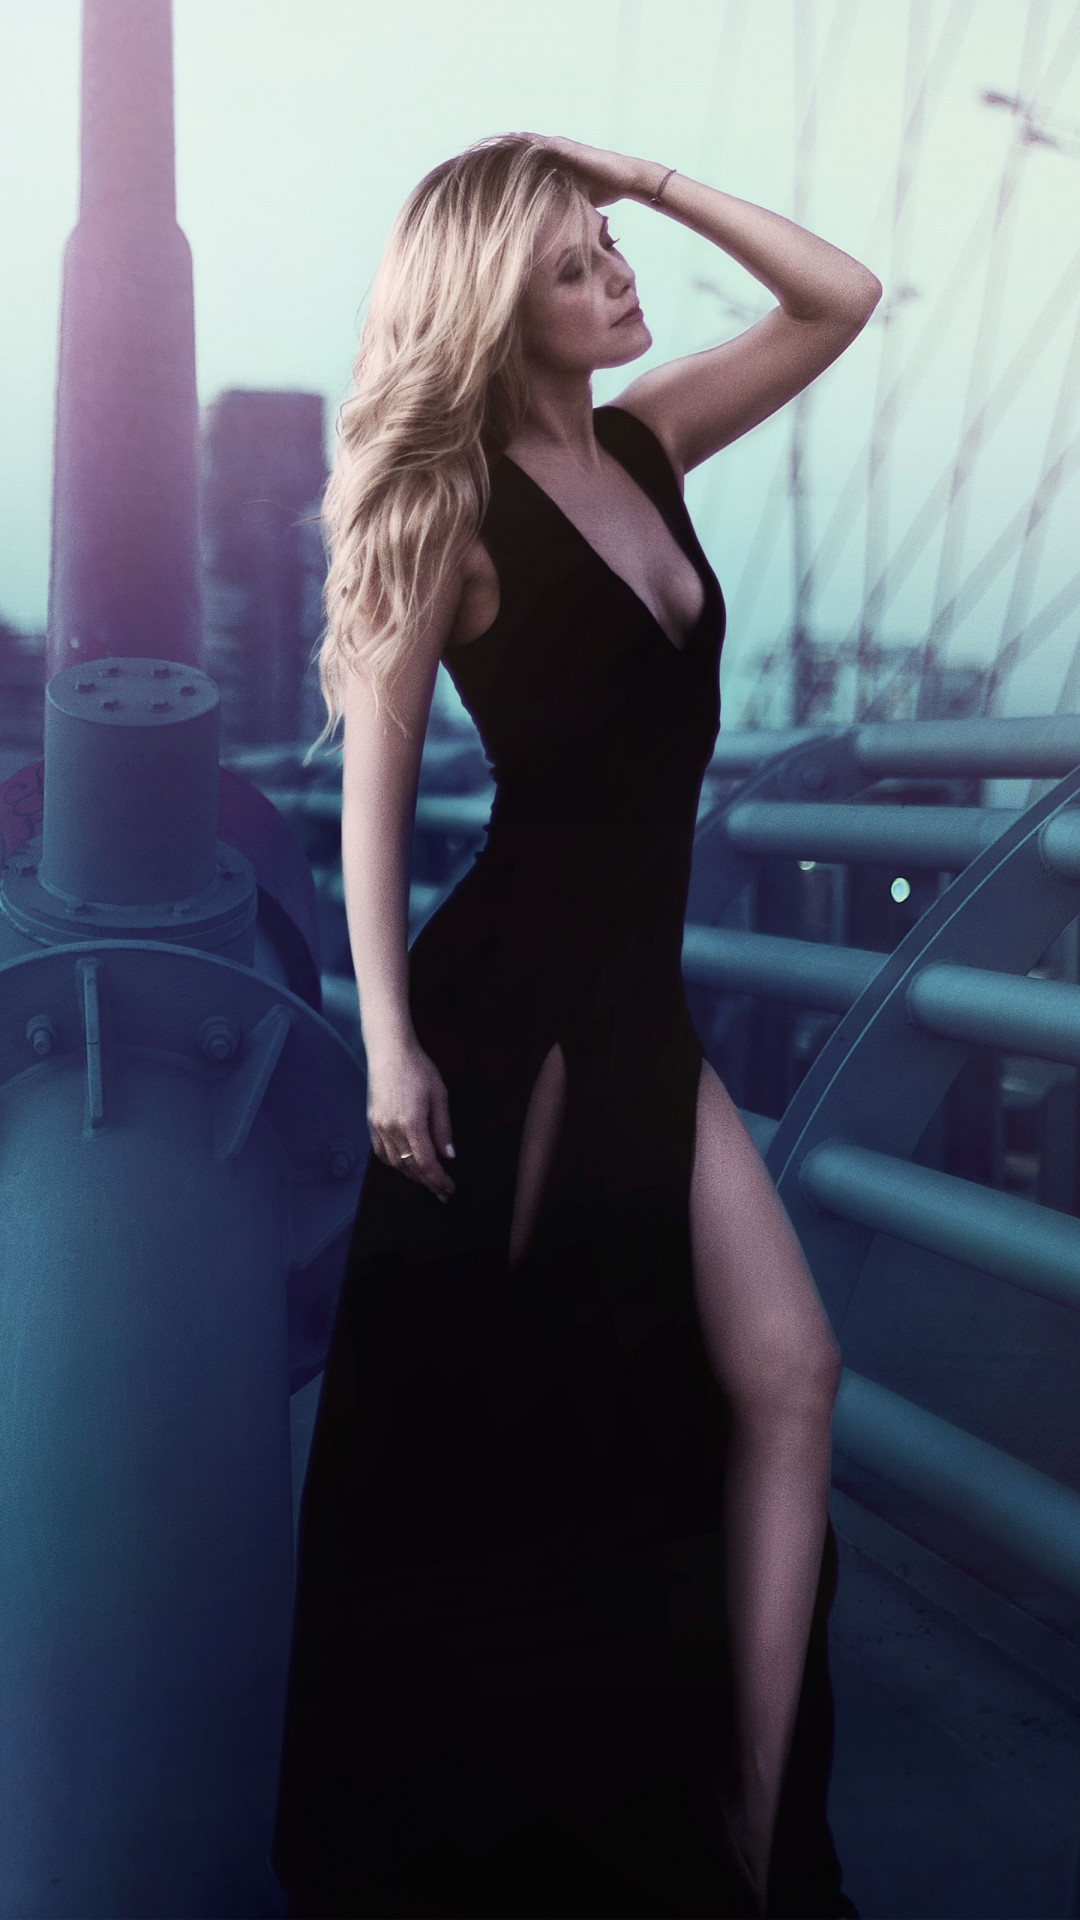 Lady with elegant black dress | 1080x1920 wallpaper